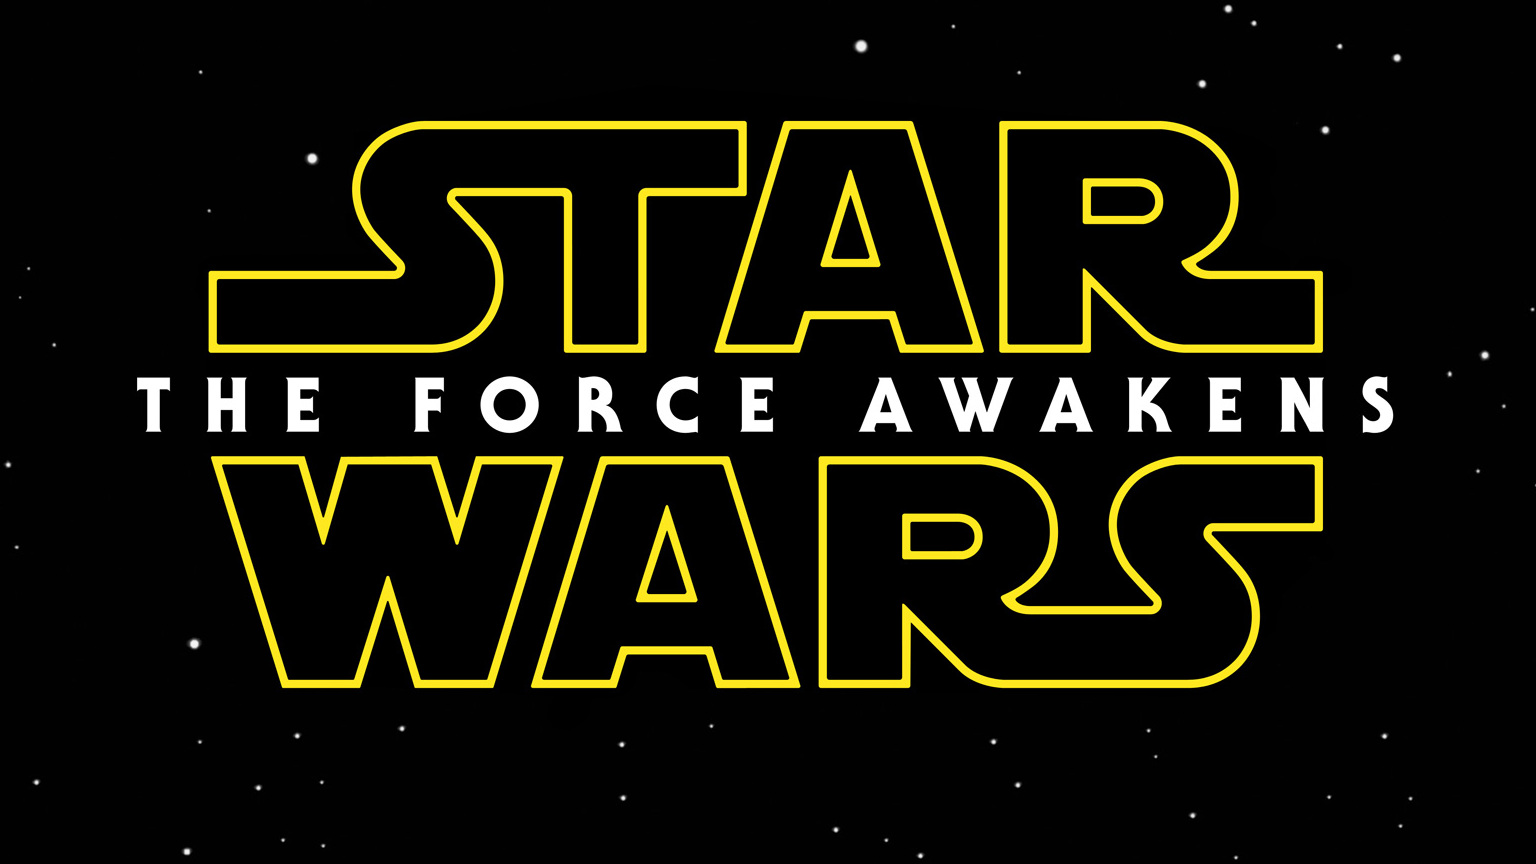 Star Wars: The Force Awakens Teaser Trailer Theater List